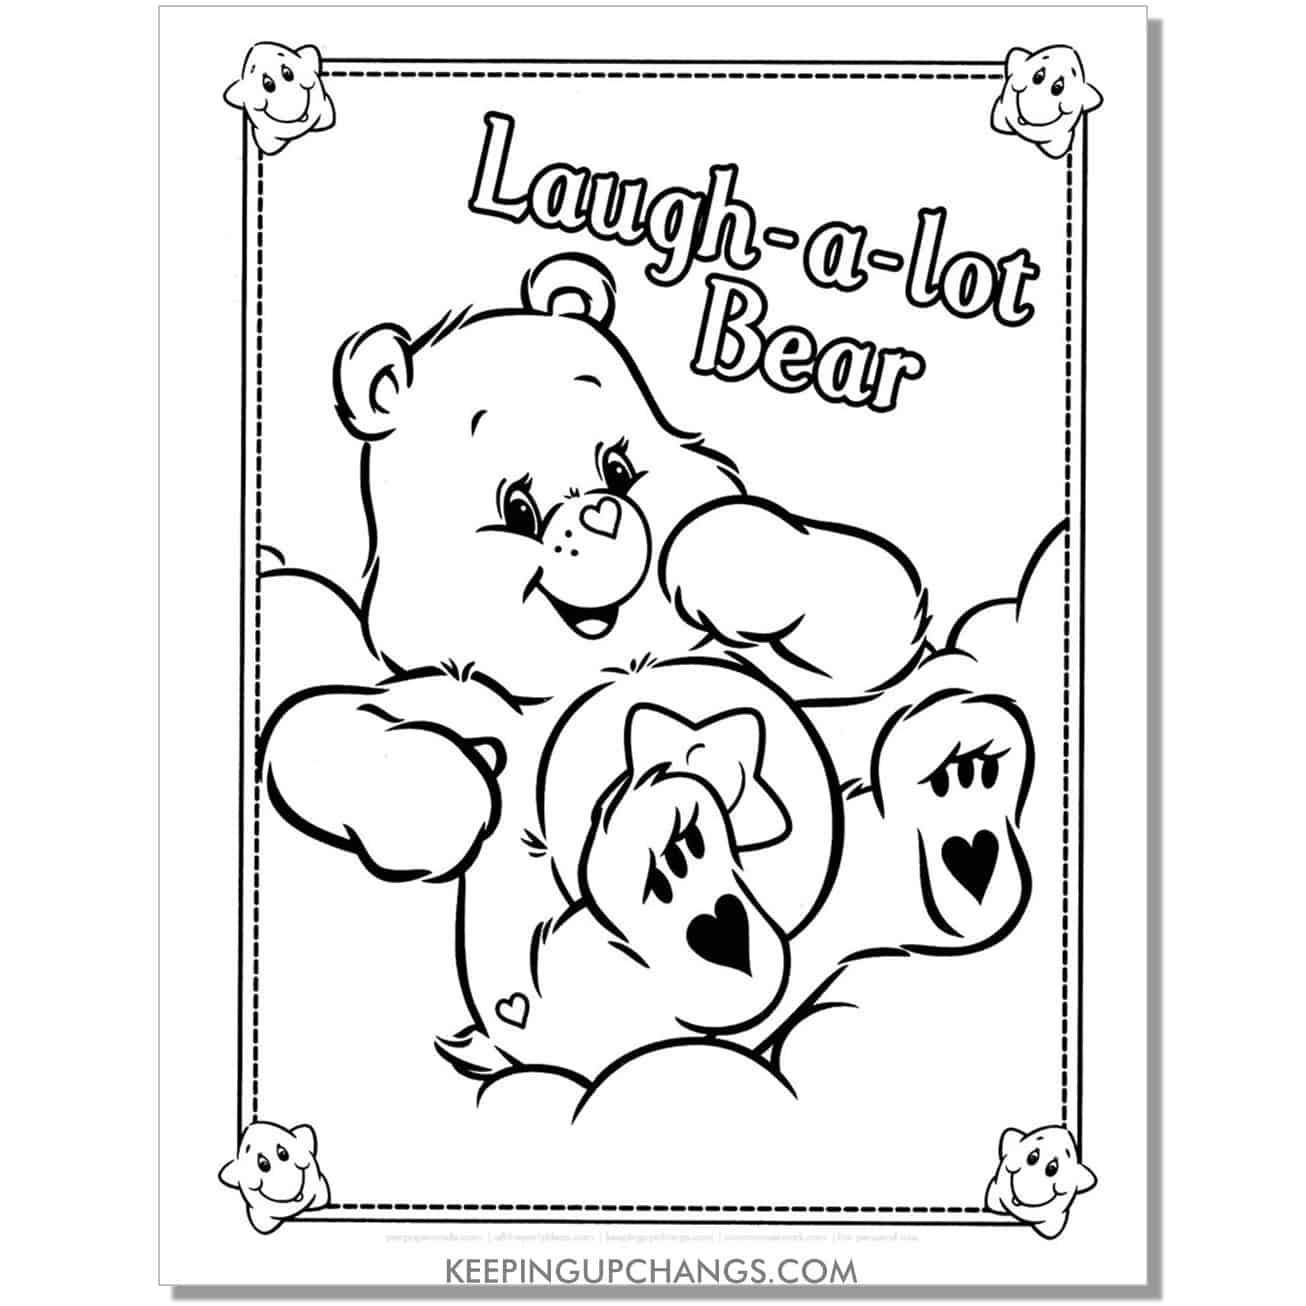 laugh a lot care bear sitting on cloud coloring page.